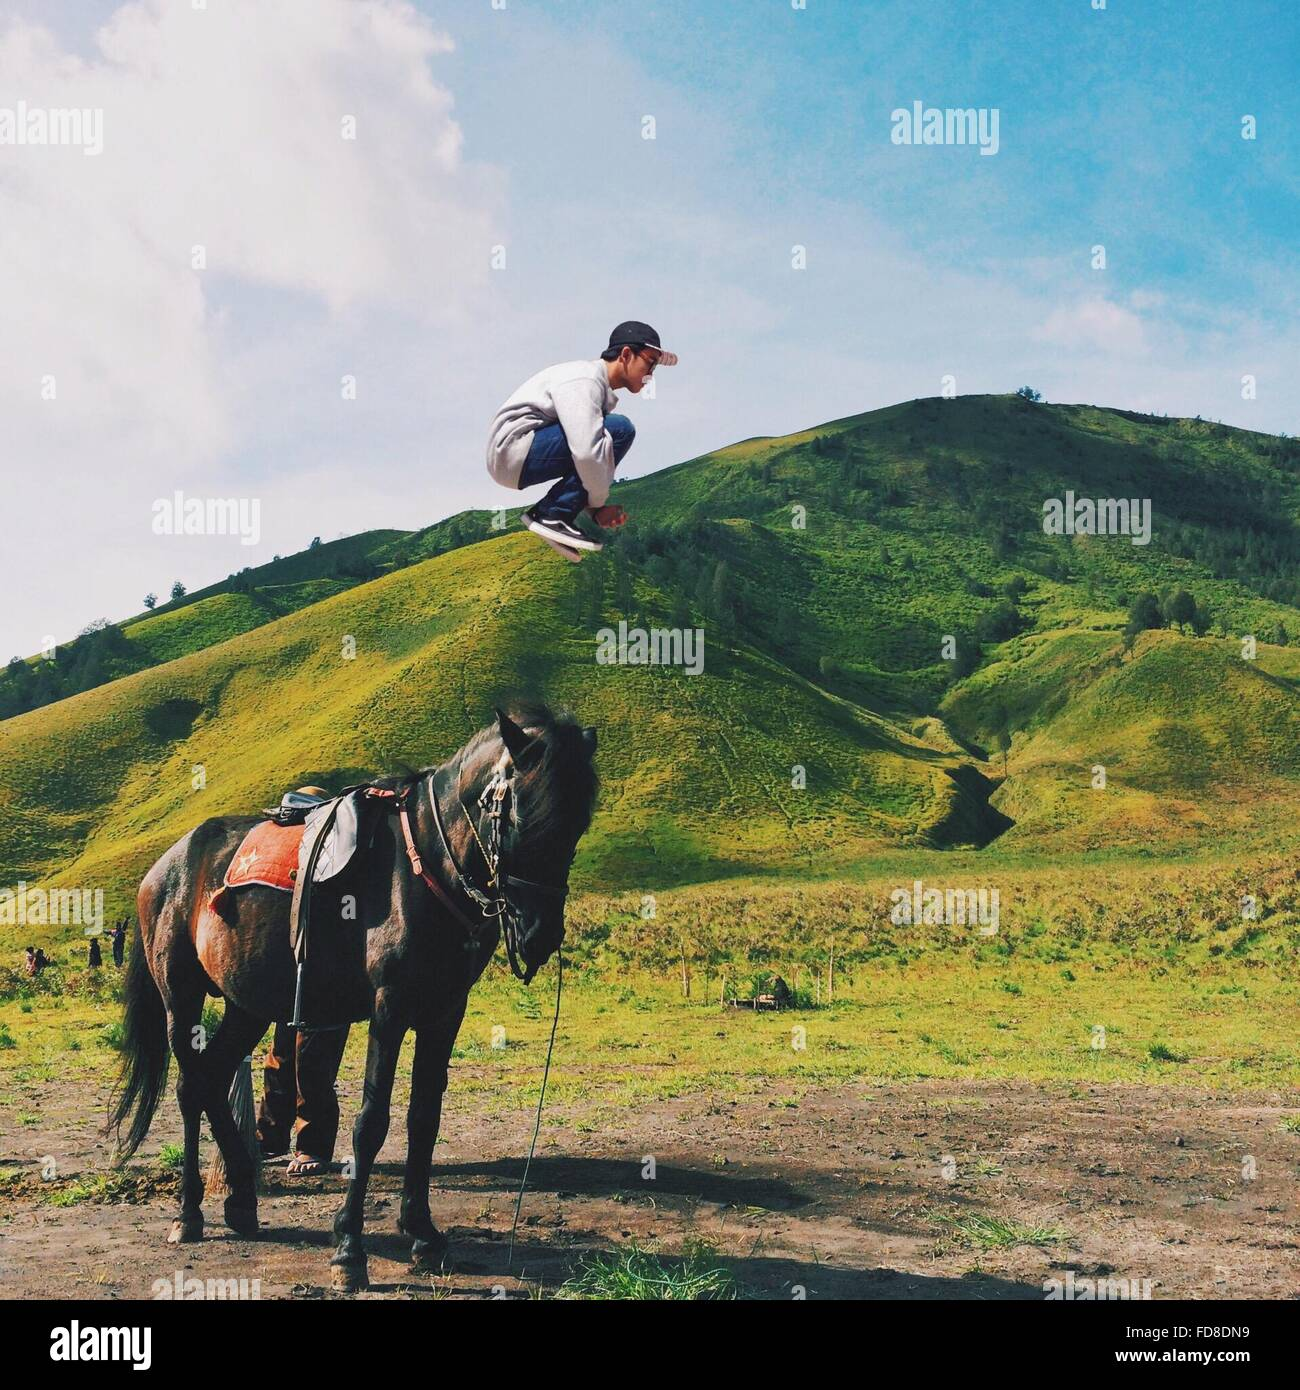 Side View Of Man Jumping In Mid Air Against Green Mountains - Stock Image